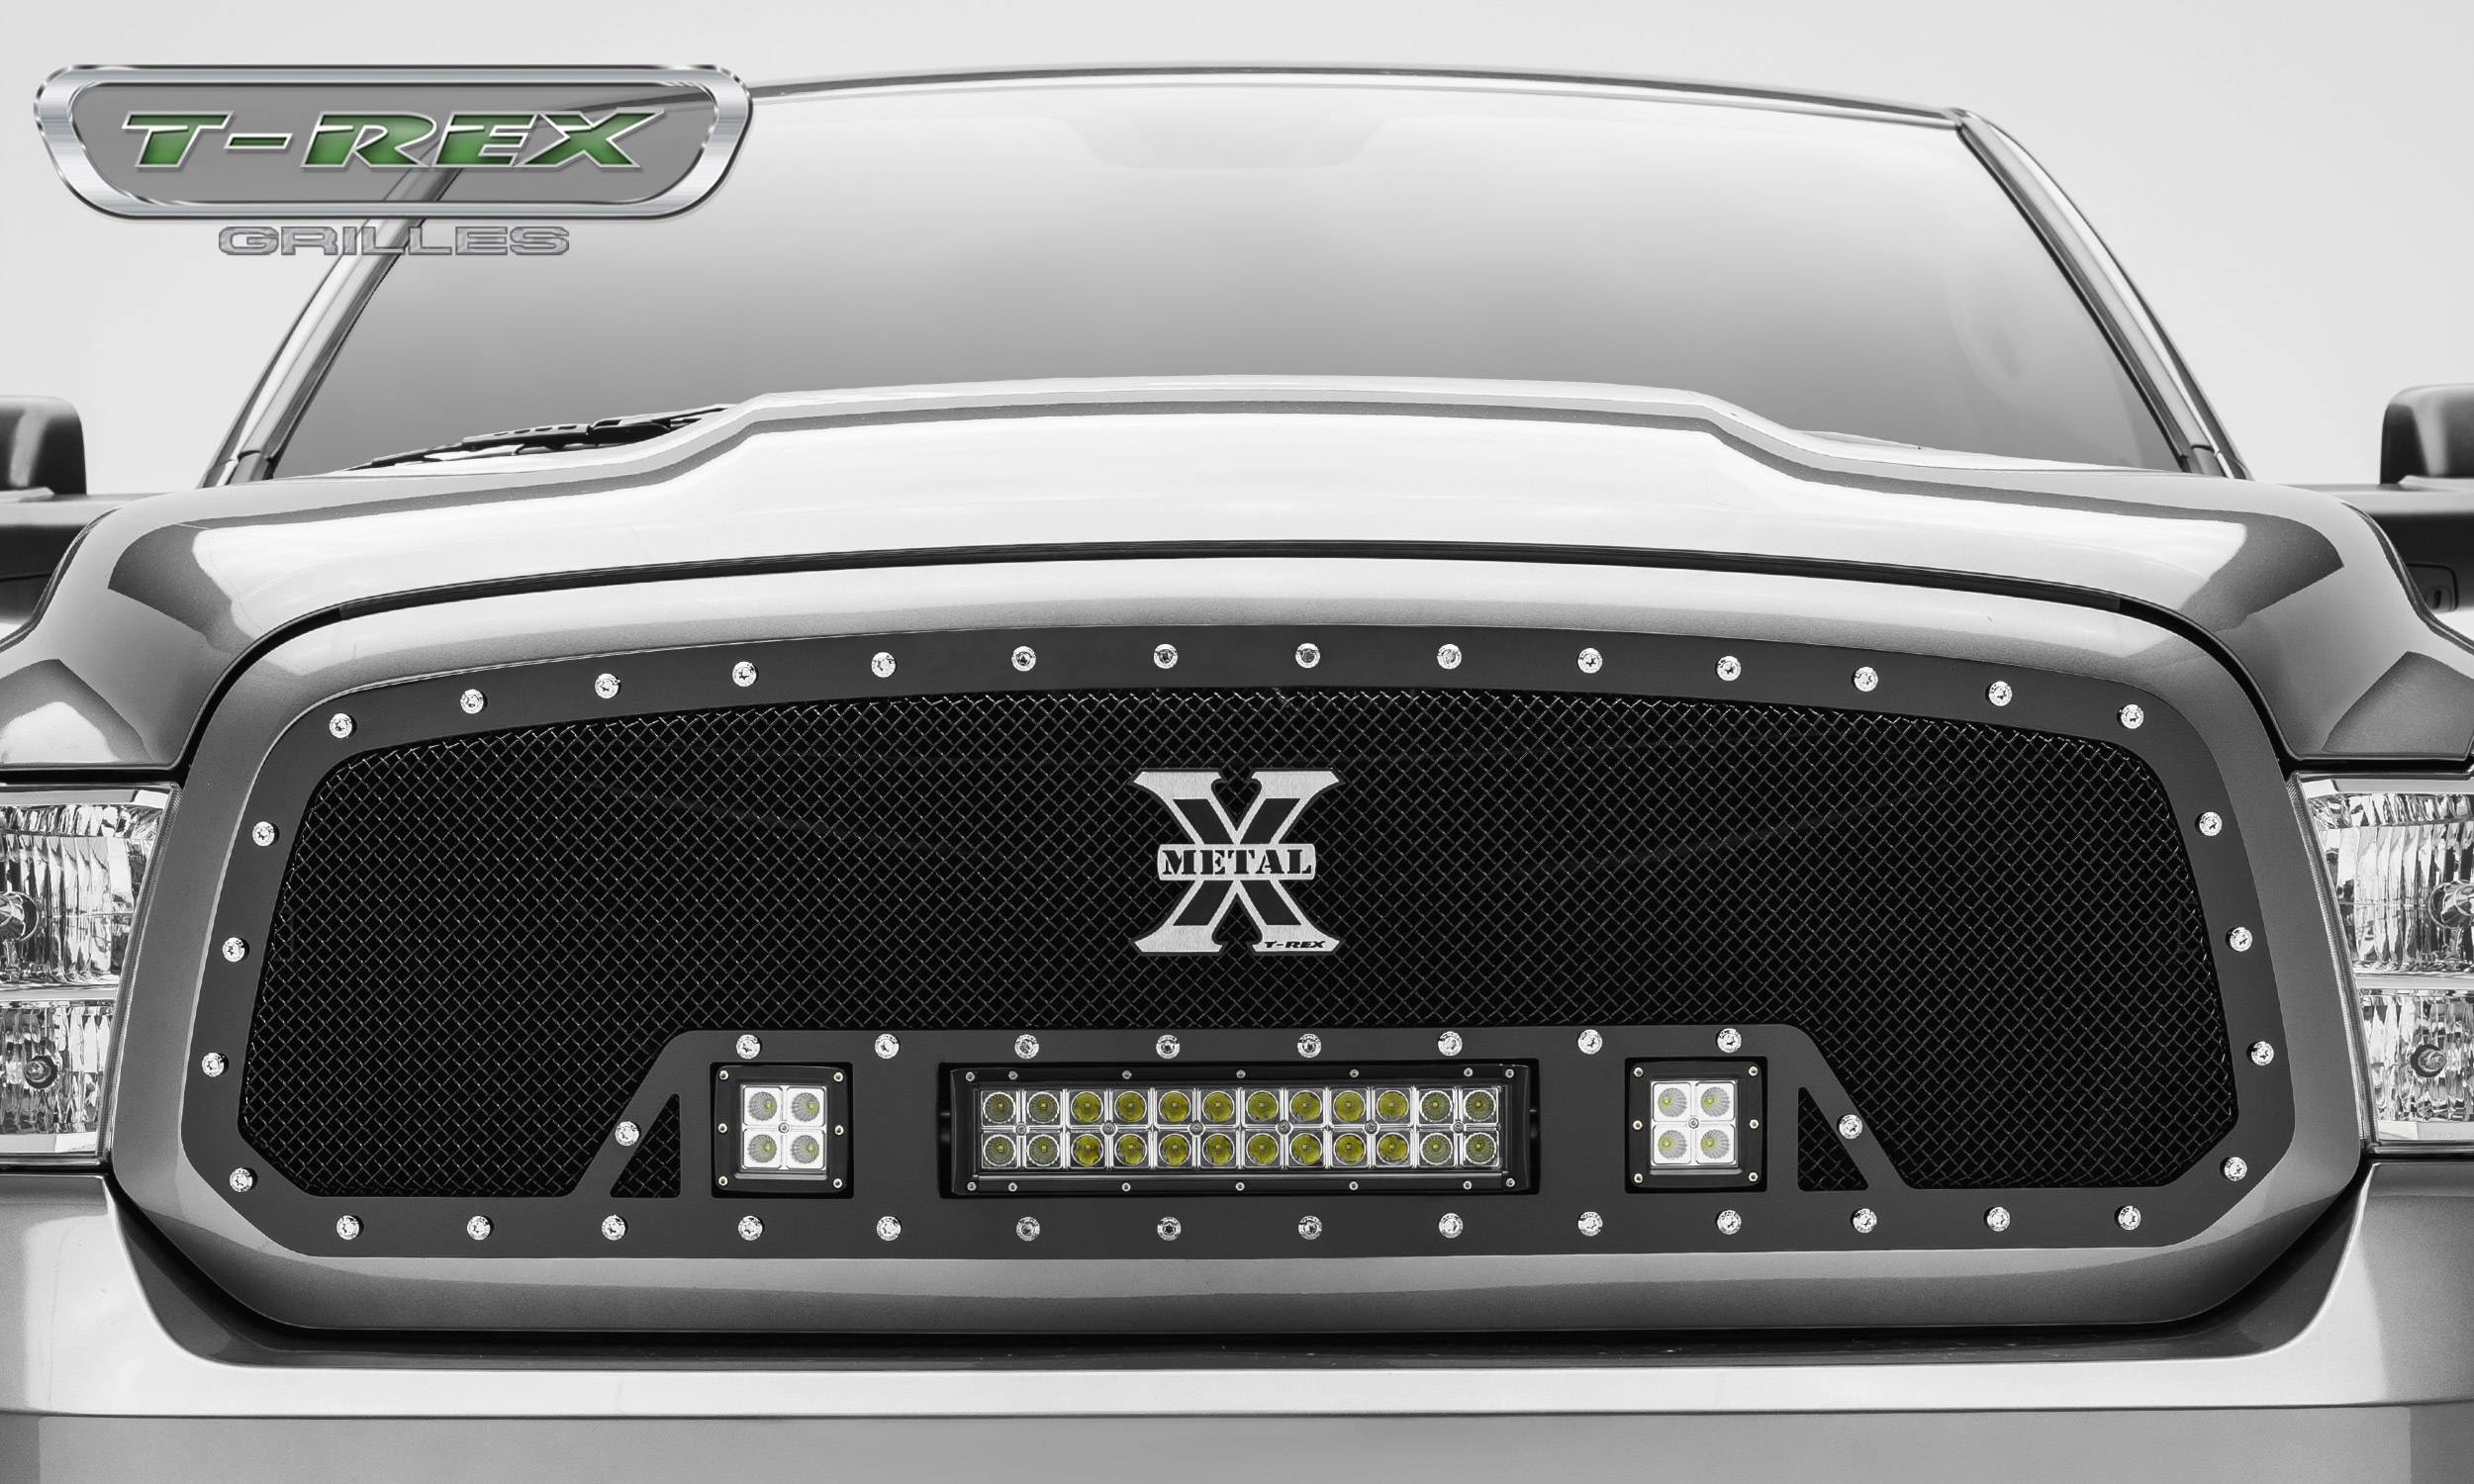 Dodge ram 1500 torch series led light grille single 2 3 led dodge ram 1500 torch series led light grille single 2 3 led cubes 1 12 light bar for off road use only pt 6314581 aloadofball Gallery